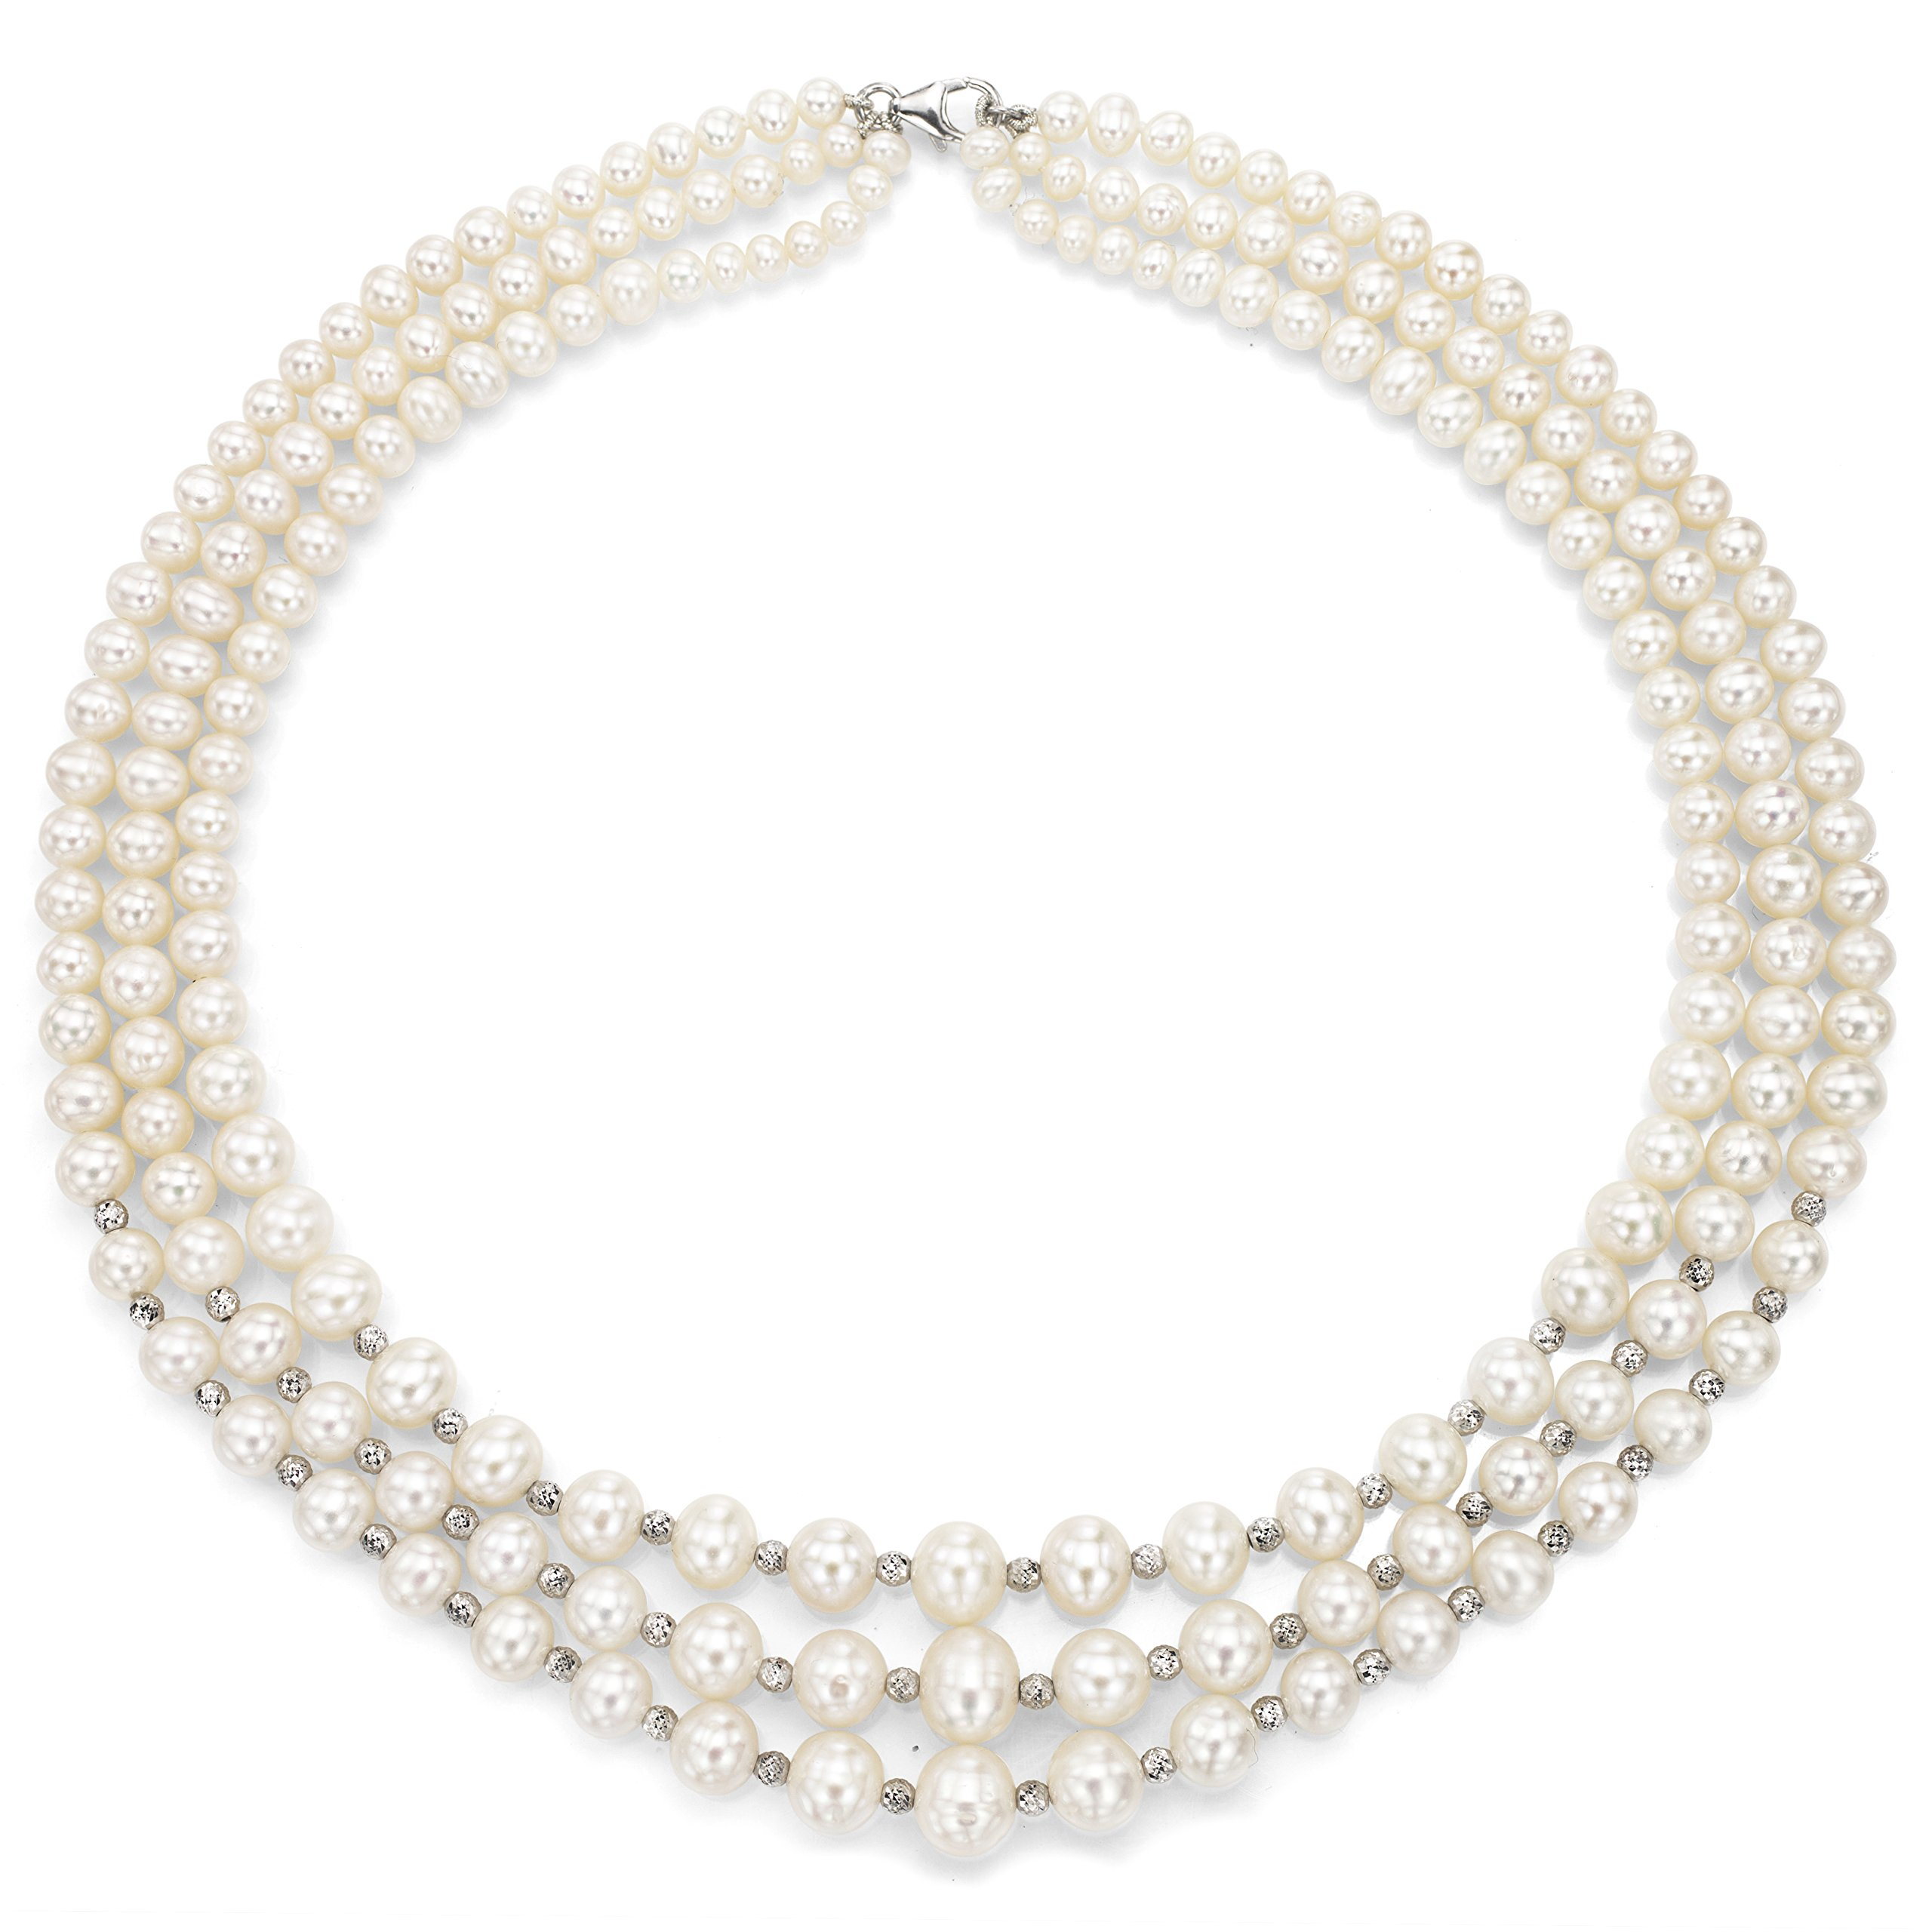 Sterling Silver Graduated 4-8.5mm White Freshwater Cultured Pearl Lobster-claw Clasp Necklace, 16''